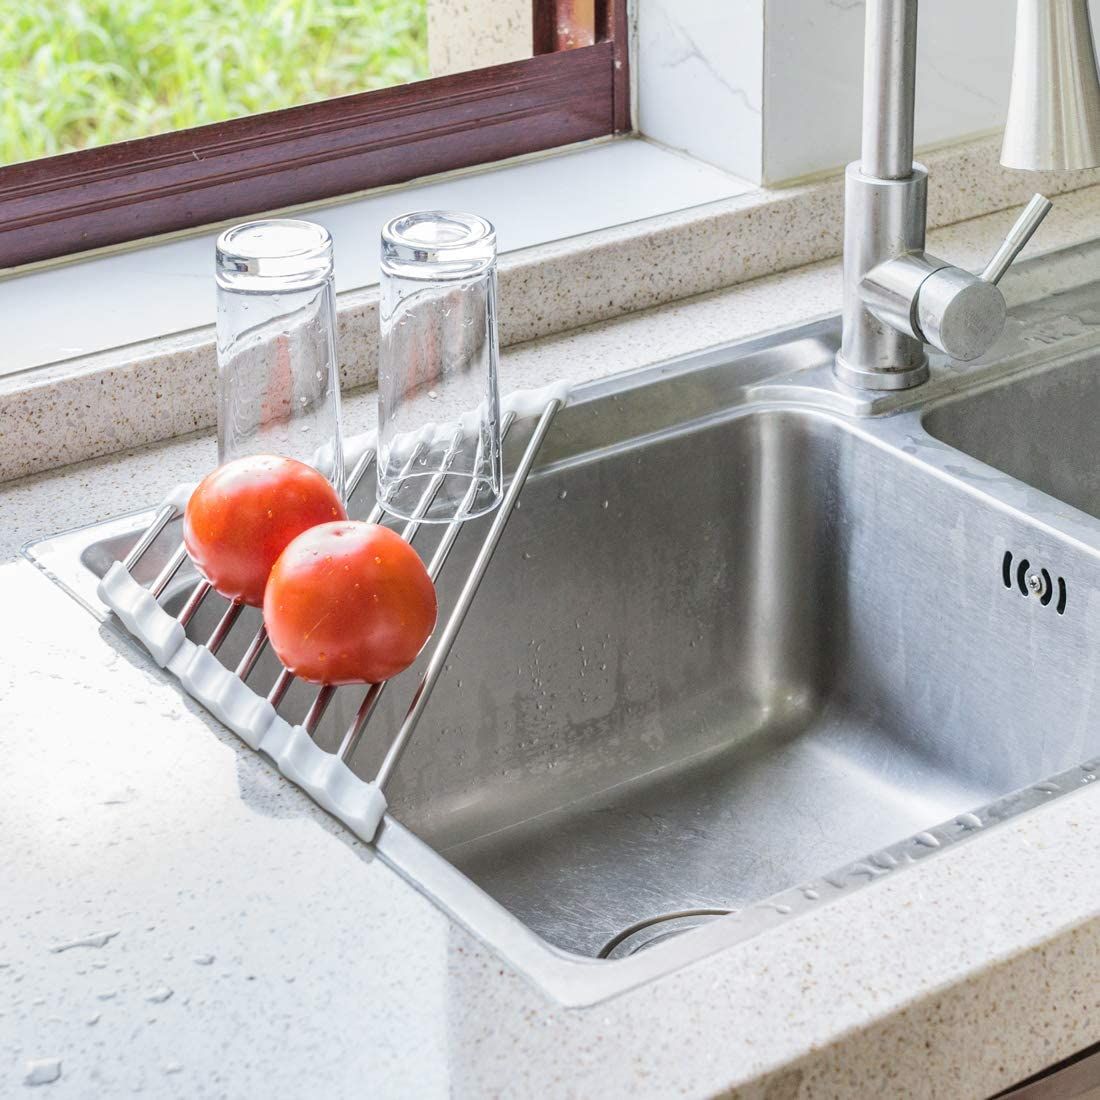 Roll Up Dish Drying Rack For Sink Corner Triangle Heavy Duty Heat Resistant Over The Sink Drying Rack Roll Up Drainer Mat With White Silicone Grips And Stainless Steel Pipes 17 5x9 2